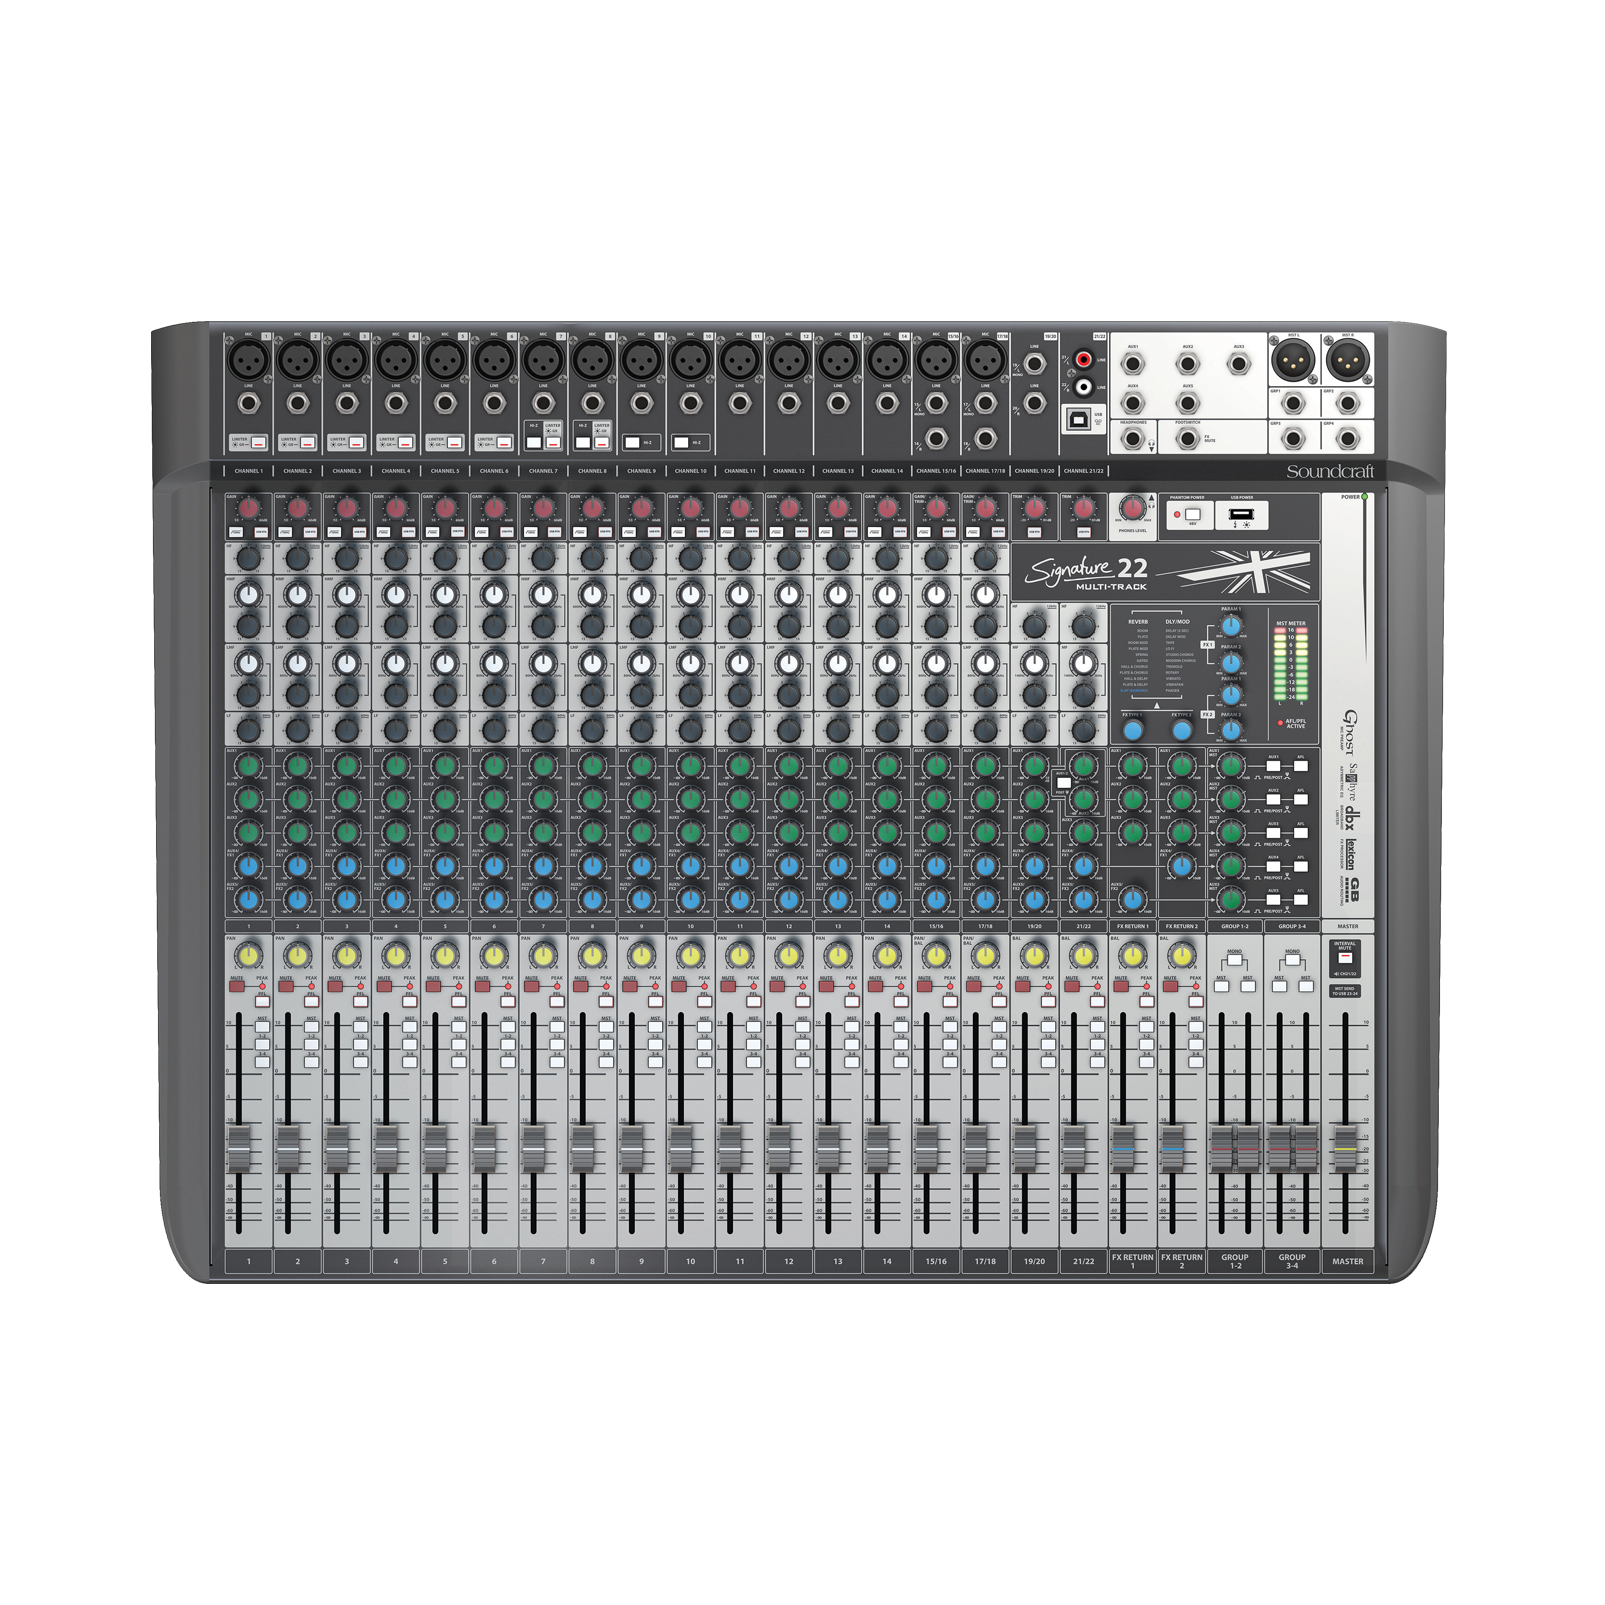 Signature 22 MTK - Black - 22-input analogue mixer with onboard effects - Hero